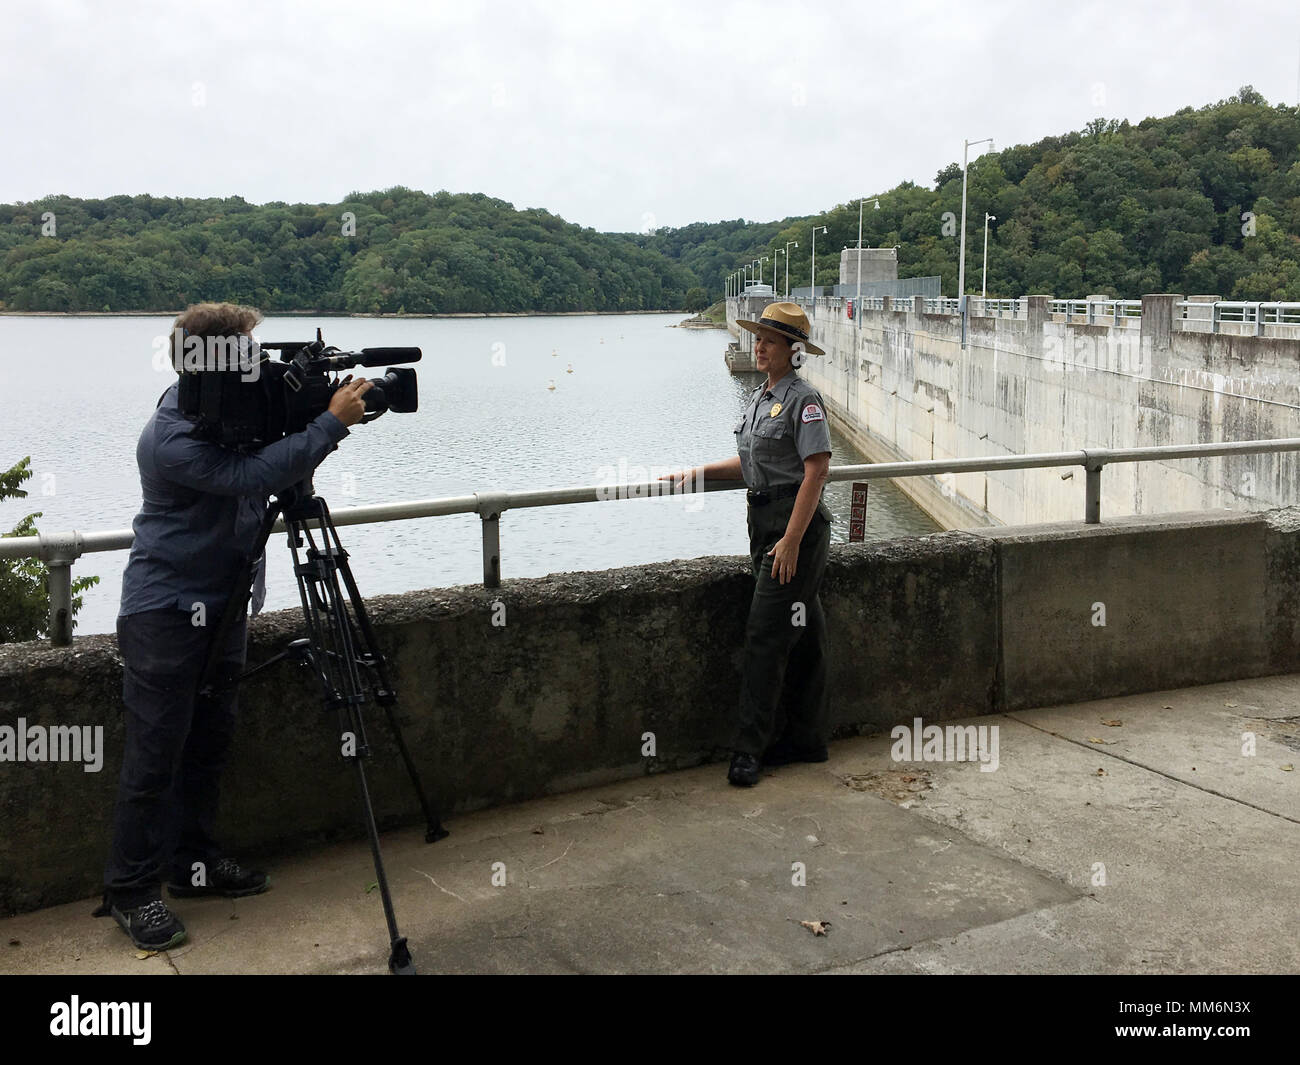 Paul Mojonnier, Tennessee Crossroads videographer, interviews Park Ranger Sondra Carmen Sept. 11, 2017 at Dale Hollow Dam in Celina, Tenn., for an upcoming episode in early 2018 for a feature as part of the dam's 75th anniversary, also in 2018. The program airs on Nashville Public Television. (USACE photo by Steve Crawford) - Stock Image